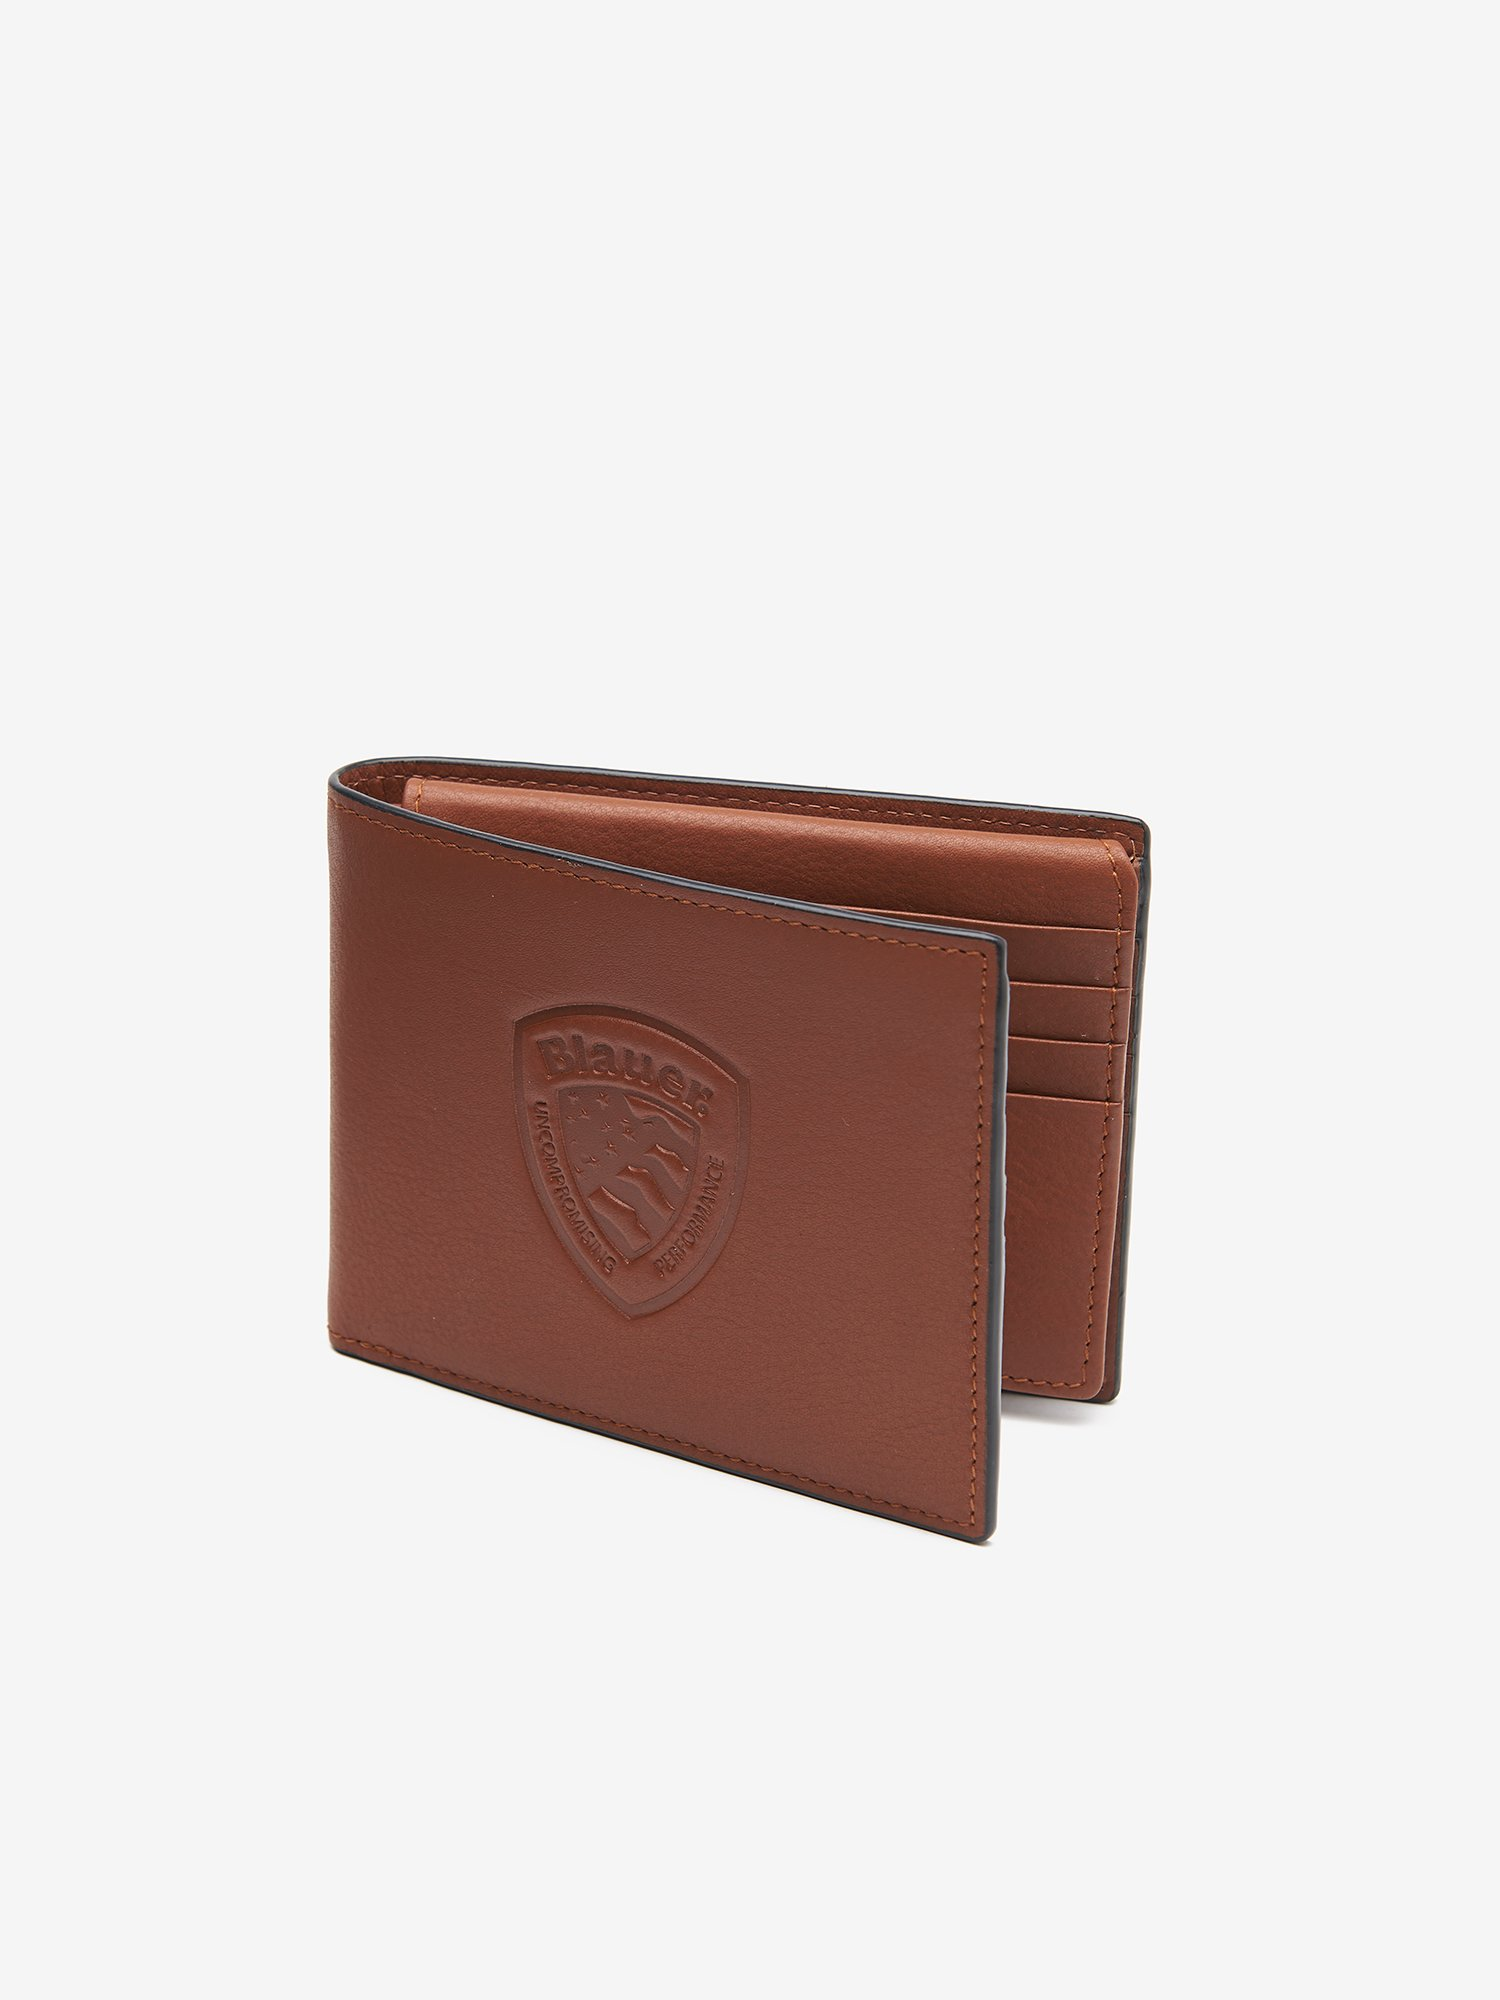 WALLET WITH BLAUER SHIELD - Blauer